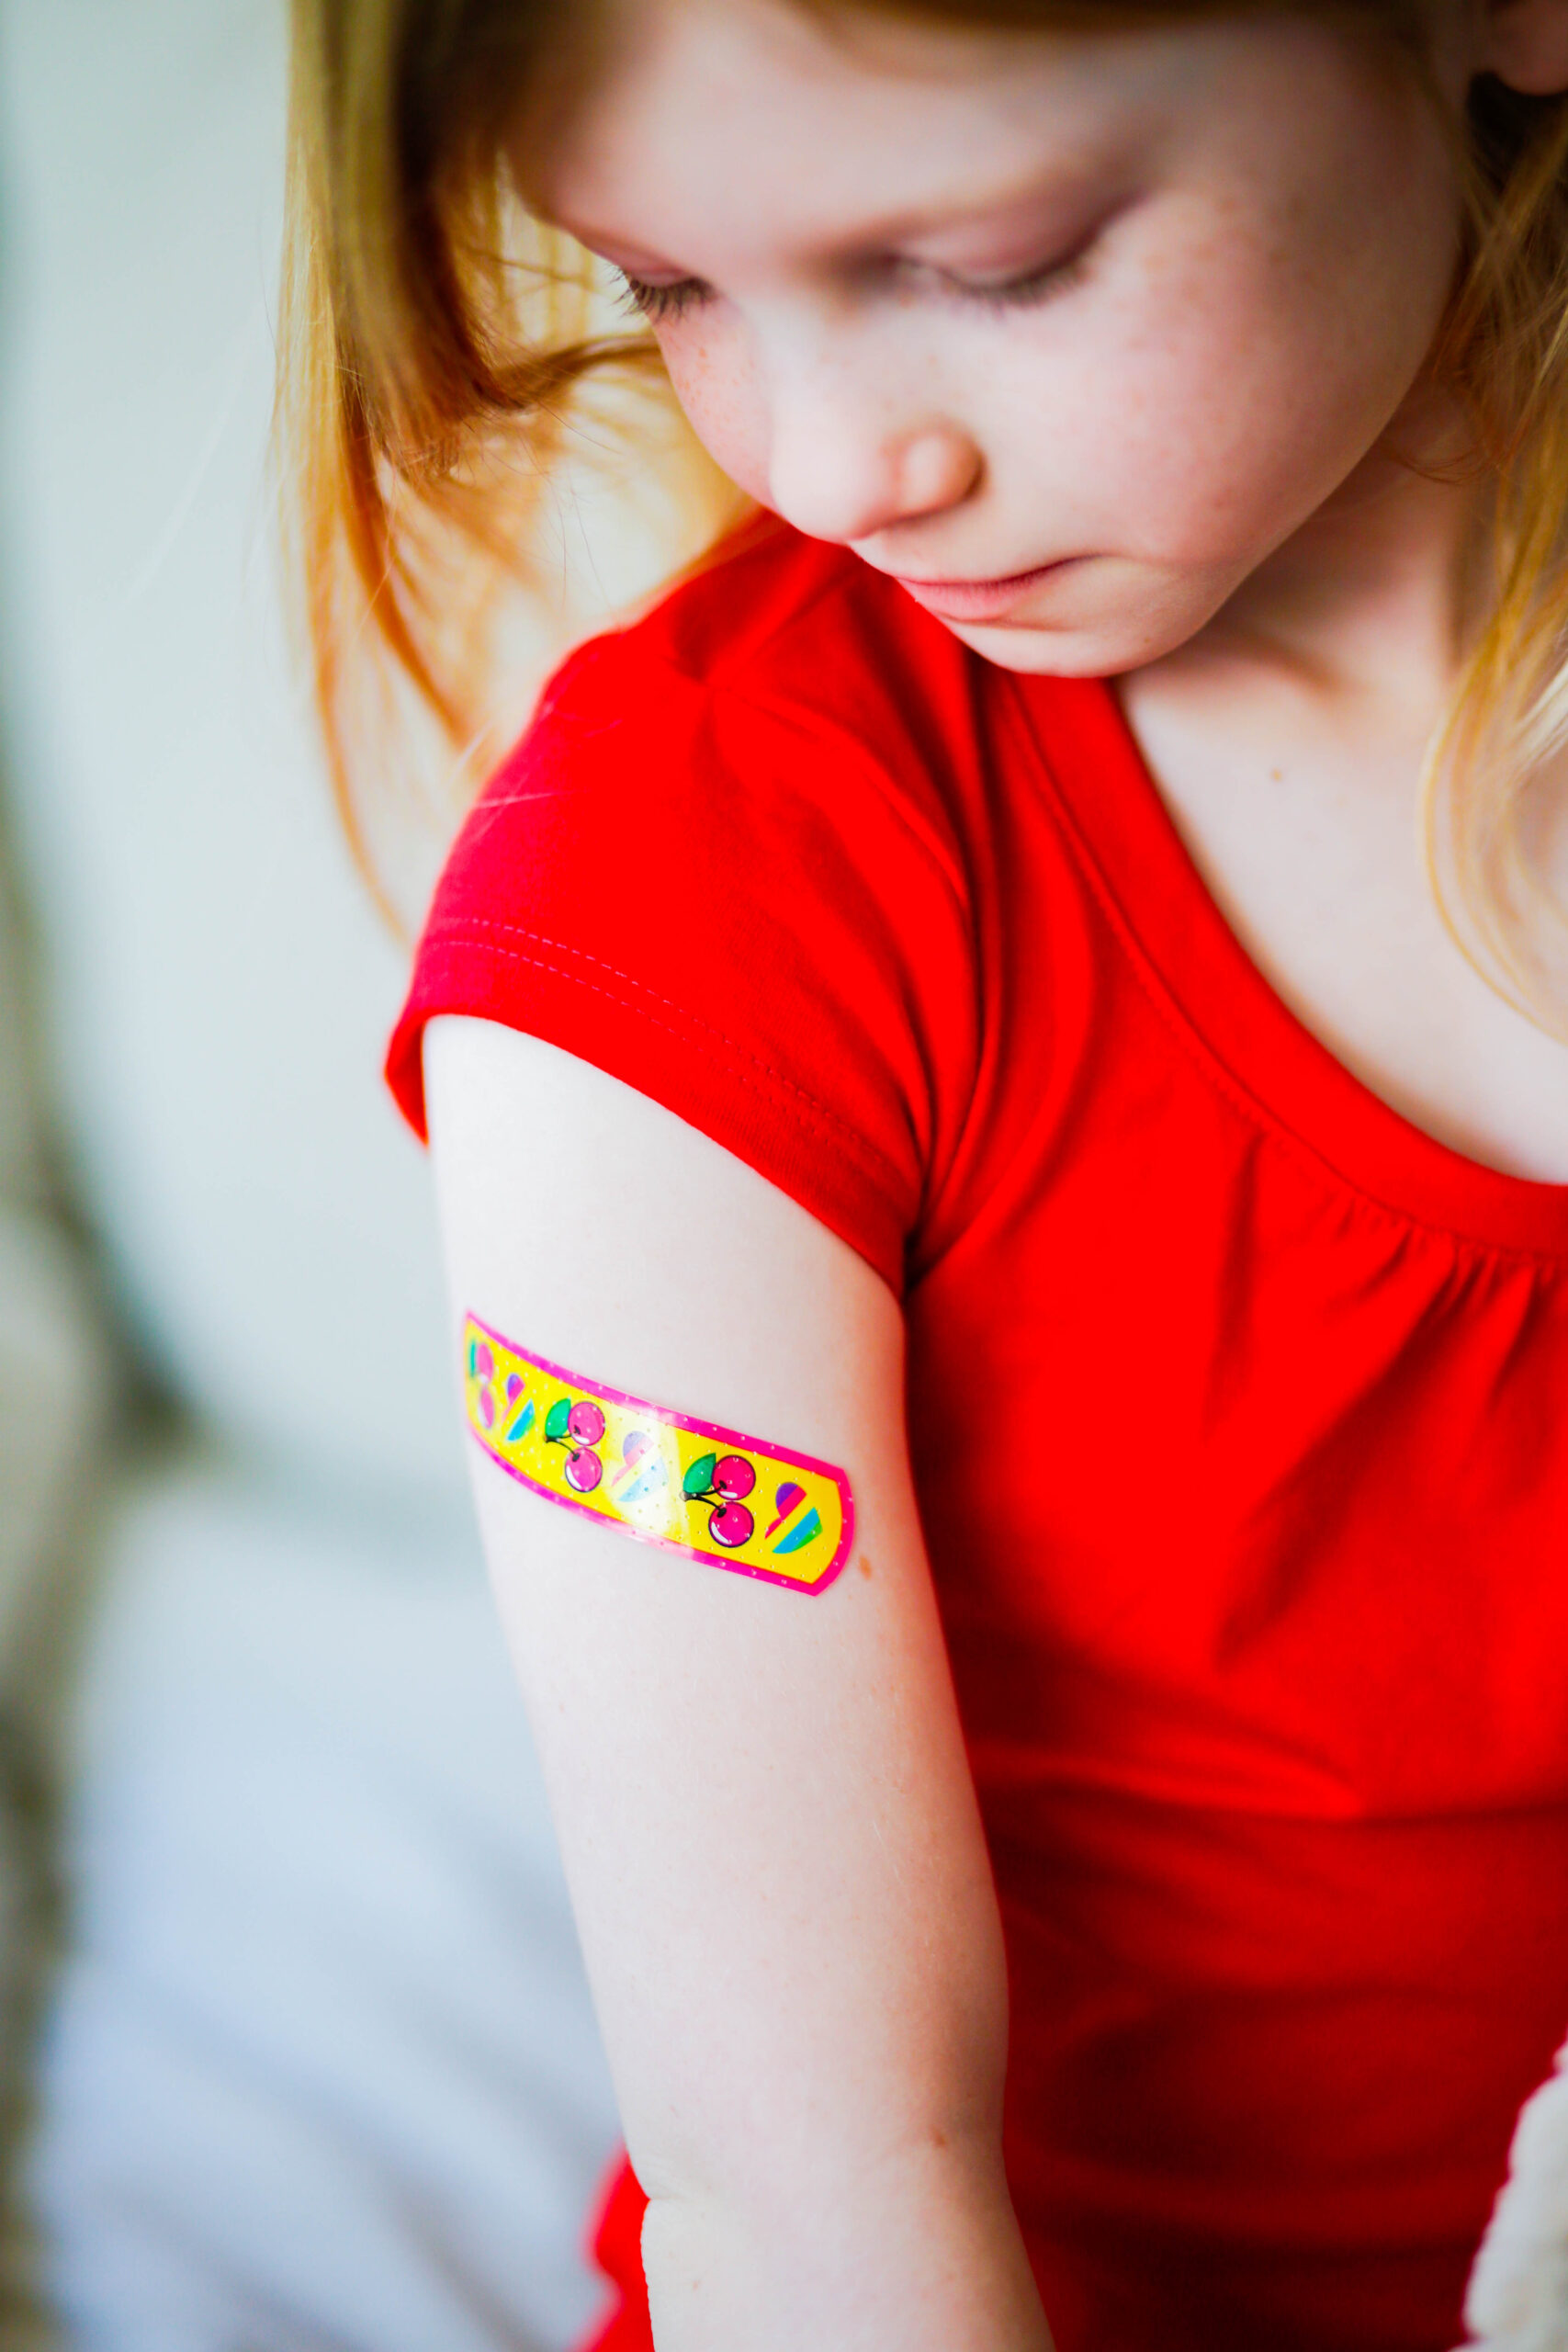 Dealing with a regular childhood fear of shots? I think it happens to....pretty much every kid. Here are some simple tips to make it easier!